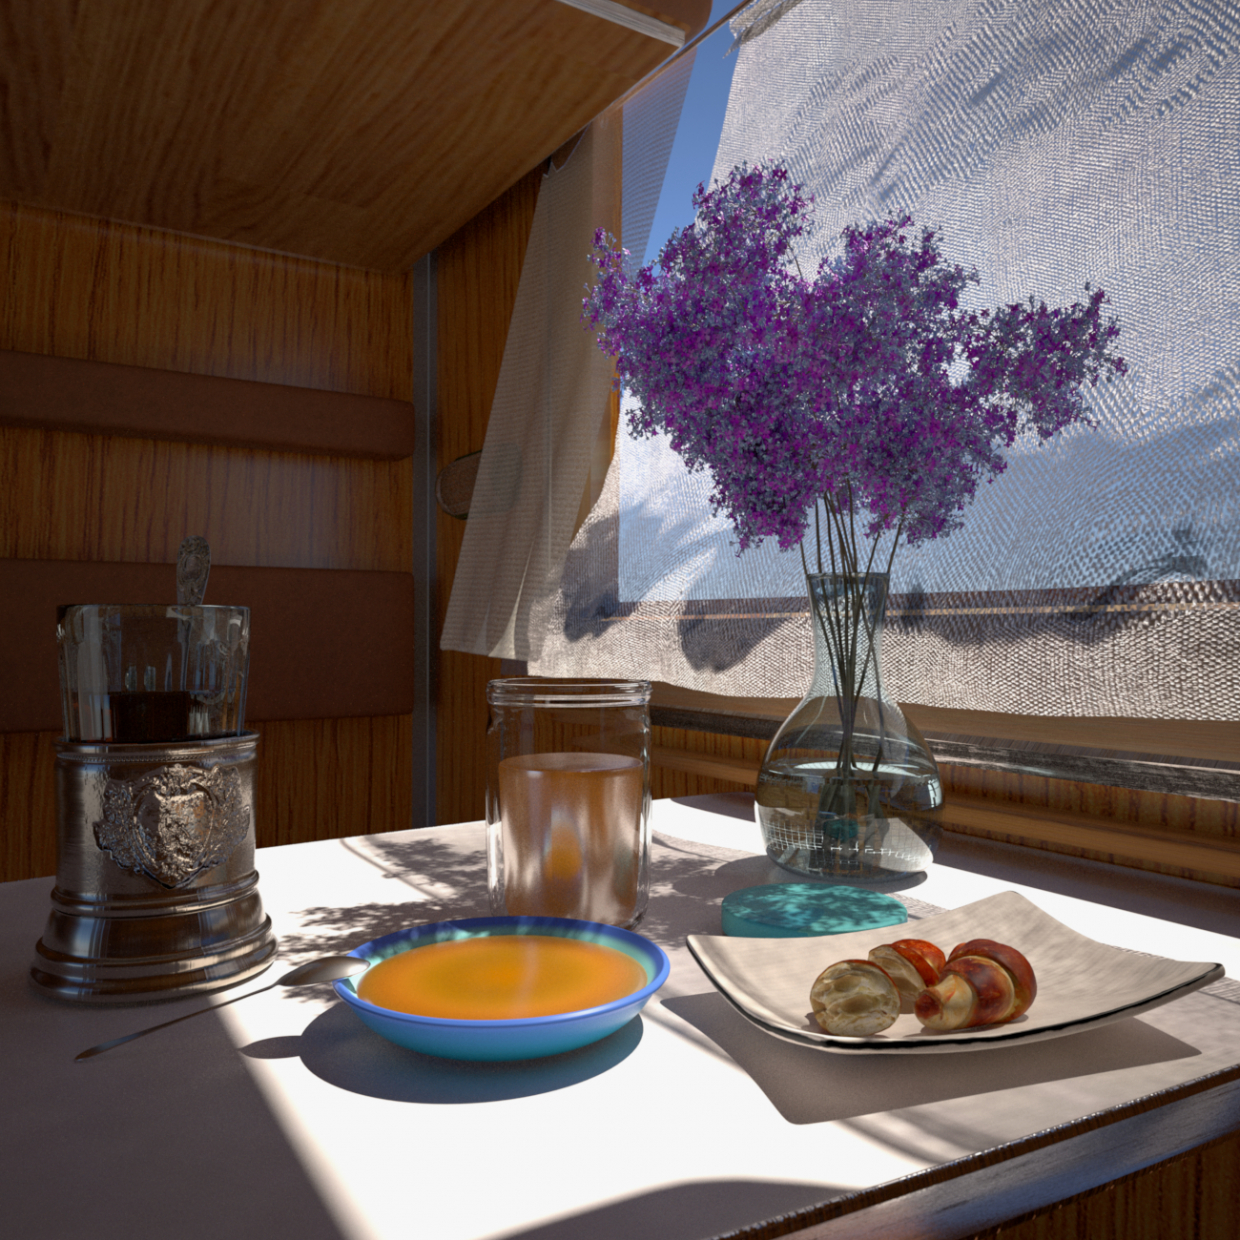 3d visualization of the project in the In the compartment (light breakfast ... or dinner) Cinema 4d, render indigo renderer of Vl Br